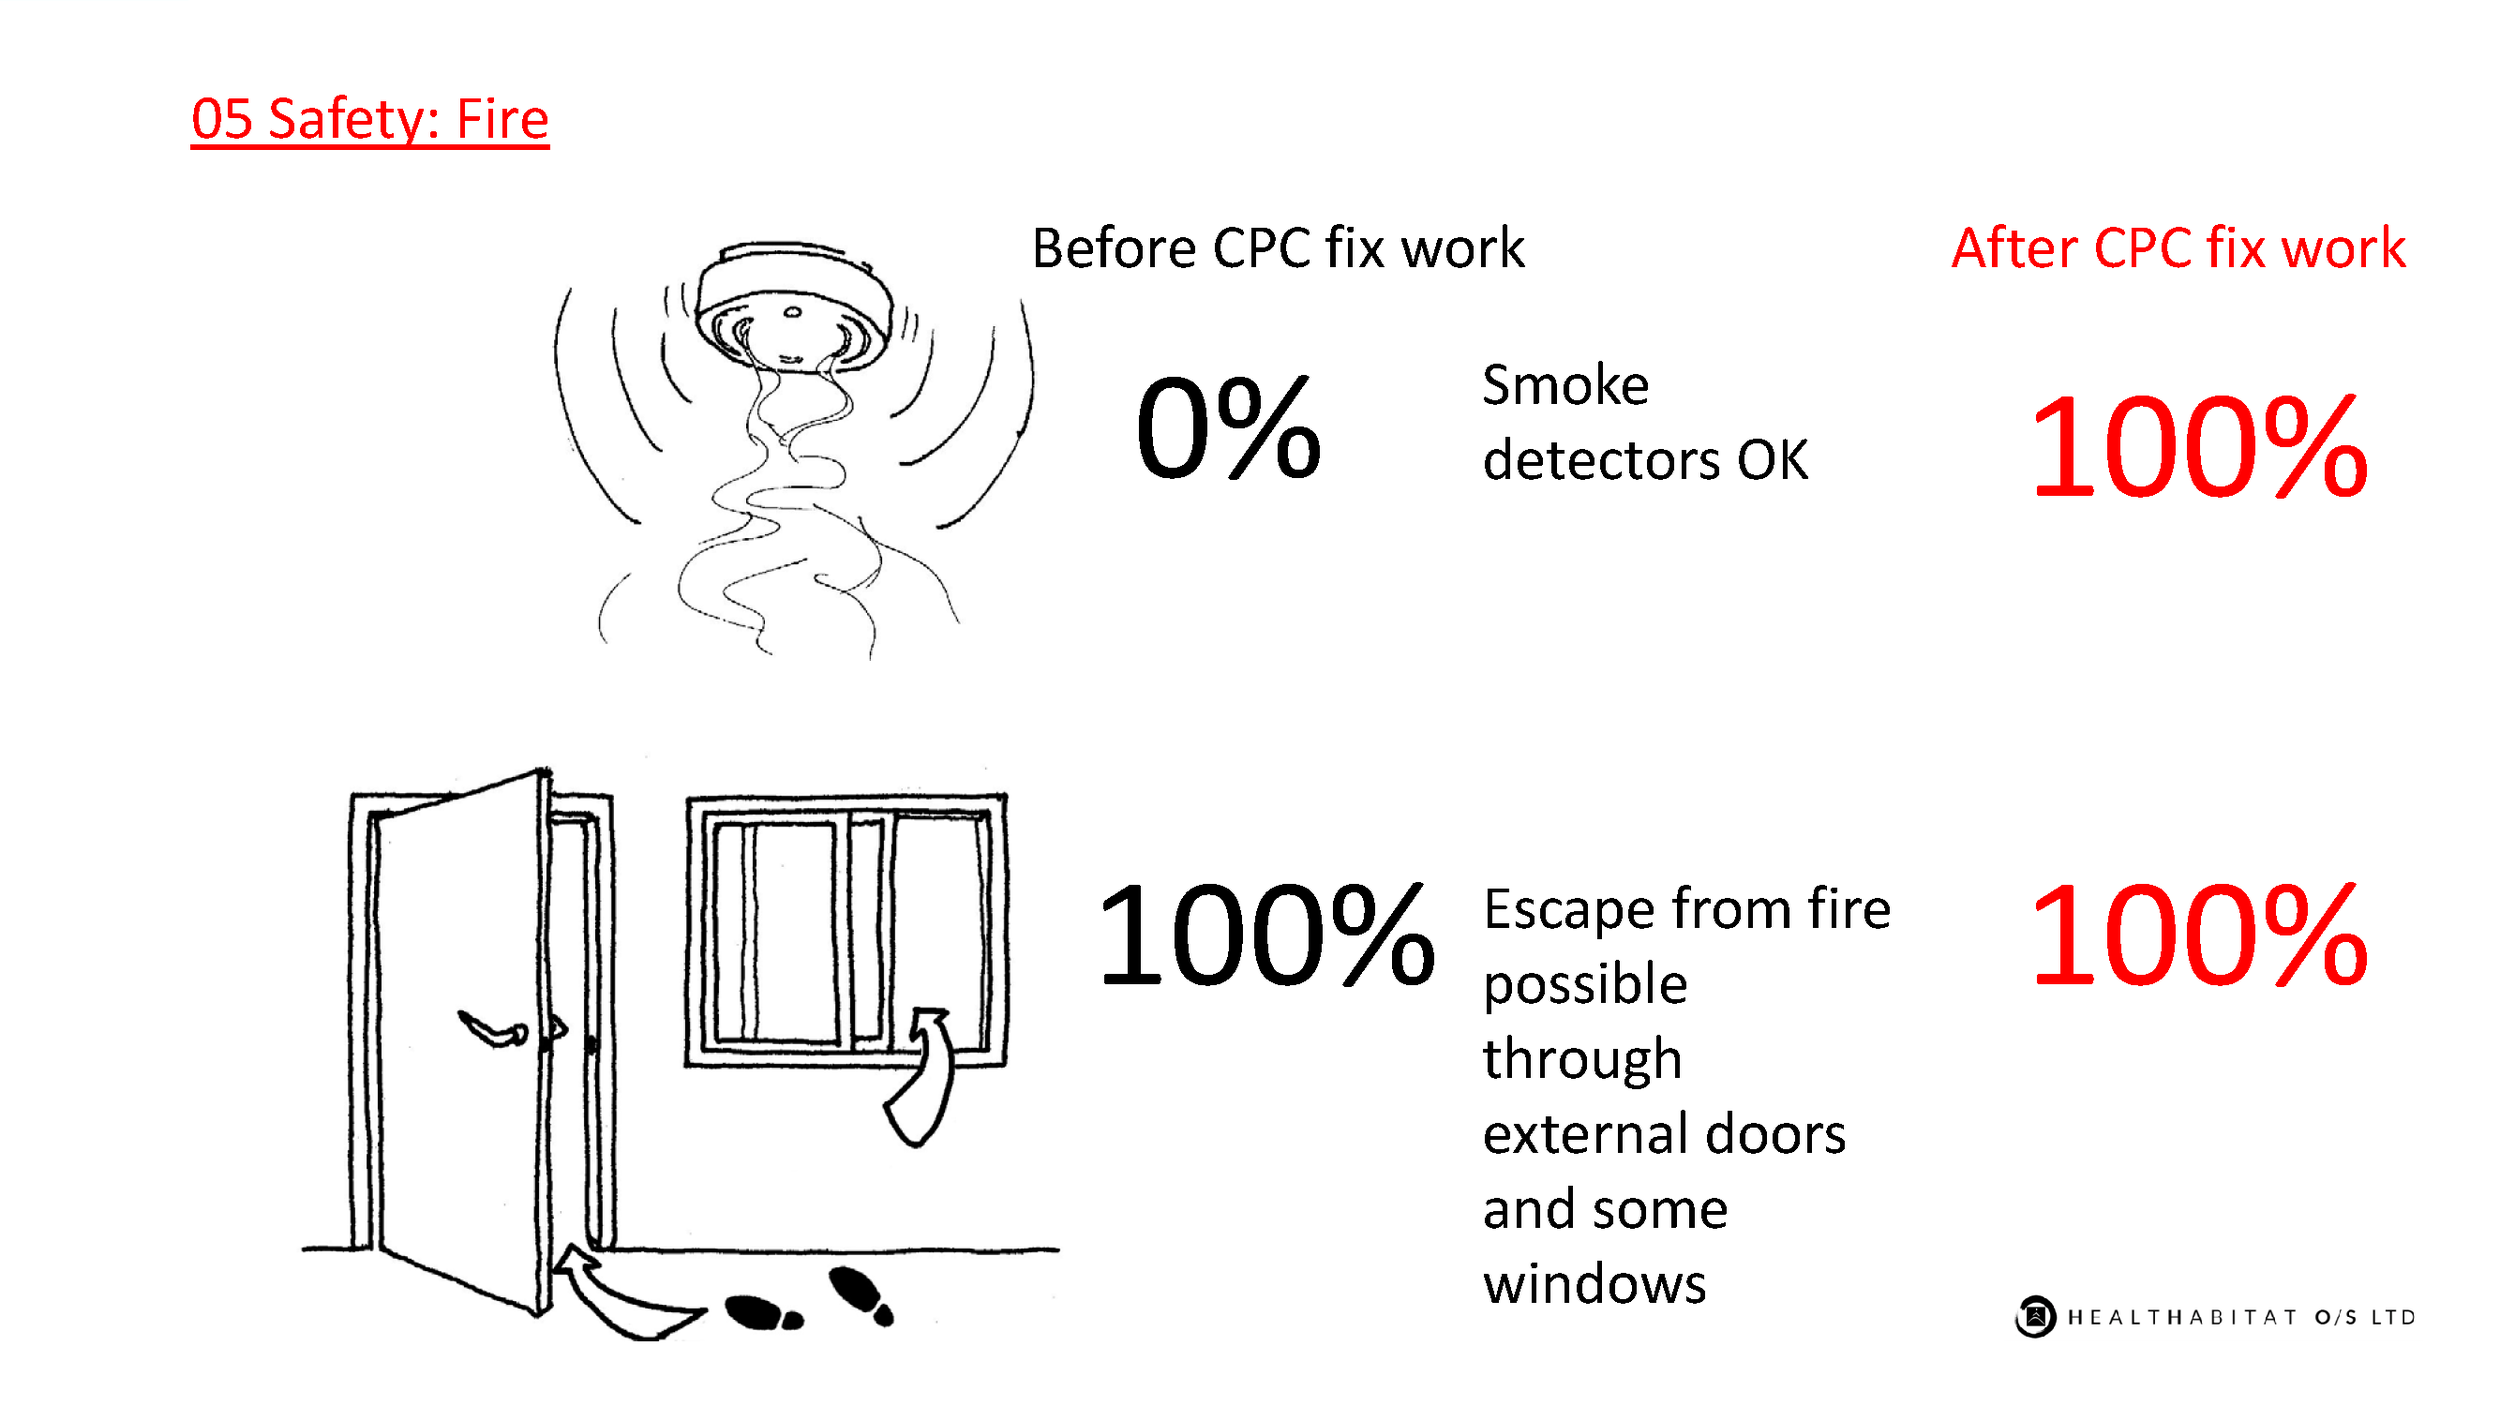 HFH-CPCNN-05-safety-fire.png